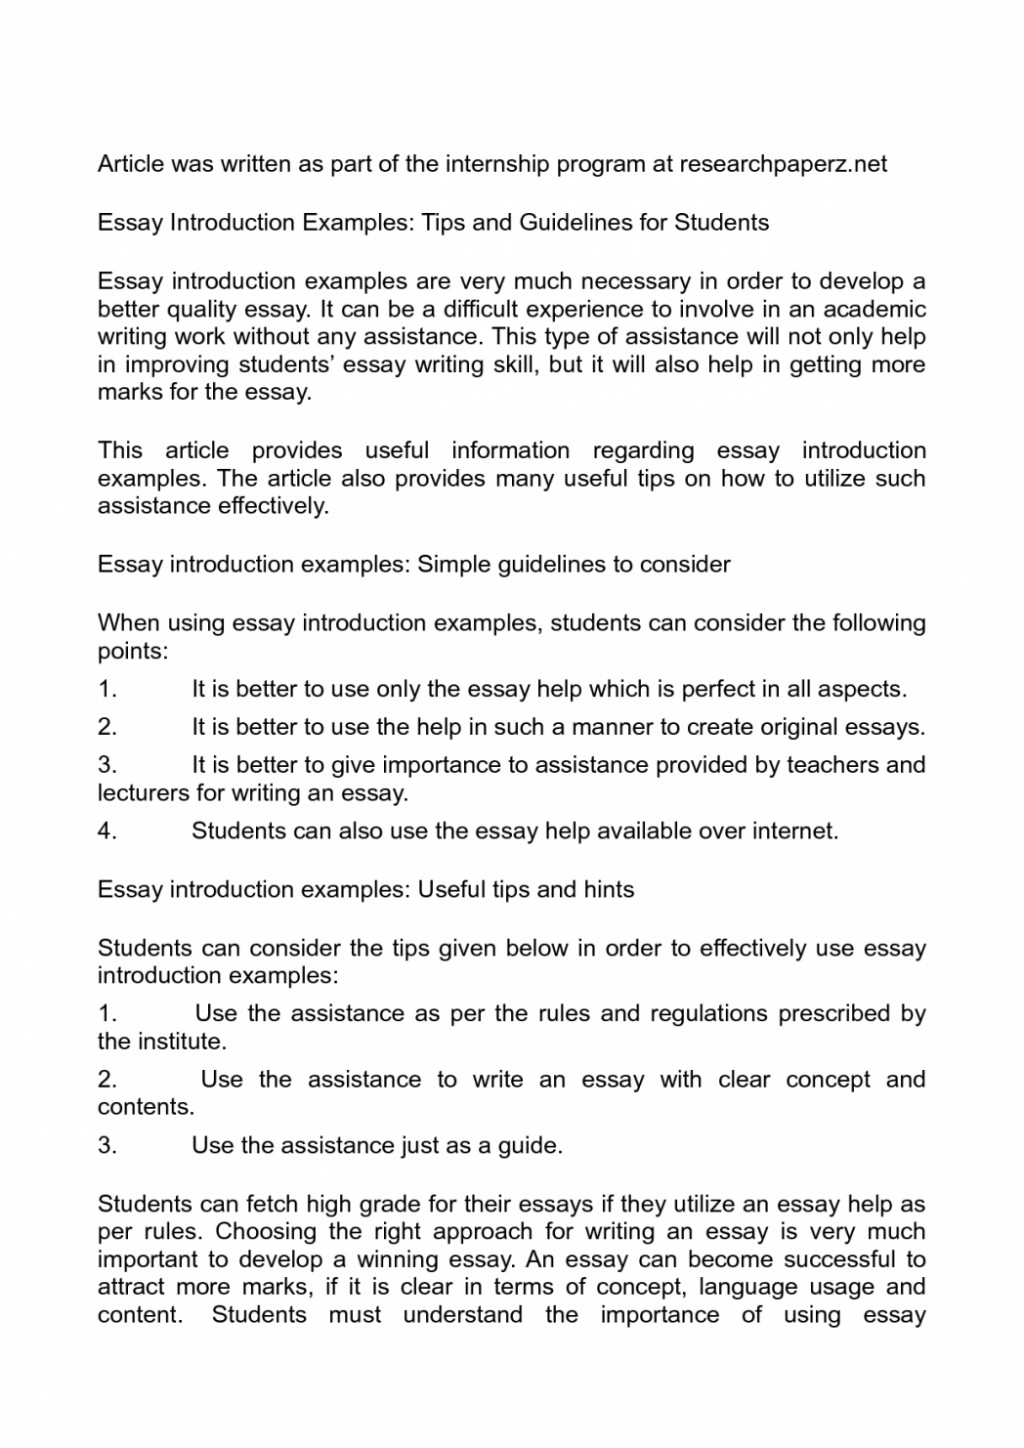 015 Quality Essay Example Writing Intro Introduction To An University Books Eyx5t Help Competition Format Examples Guide Advice Course Service Uk Excellent Improvement In Hindi Tamil Marathi Large